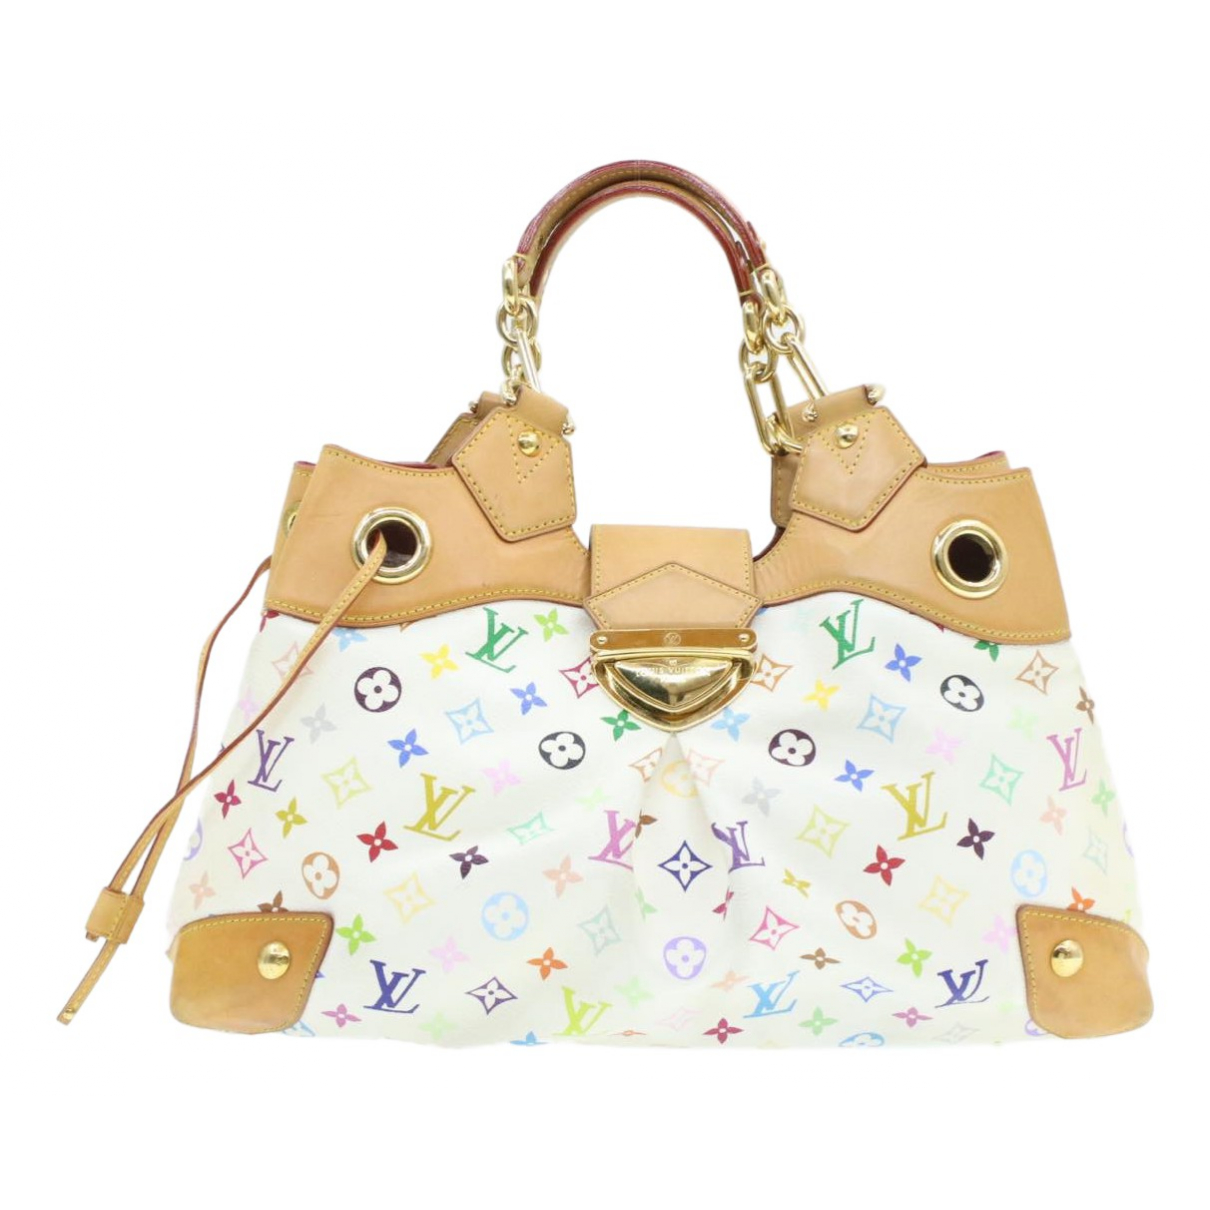 Louis Vuitton Ursula Handtasche in  Bunt Leinen